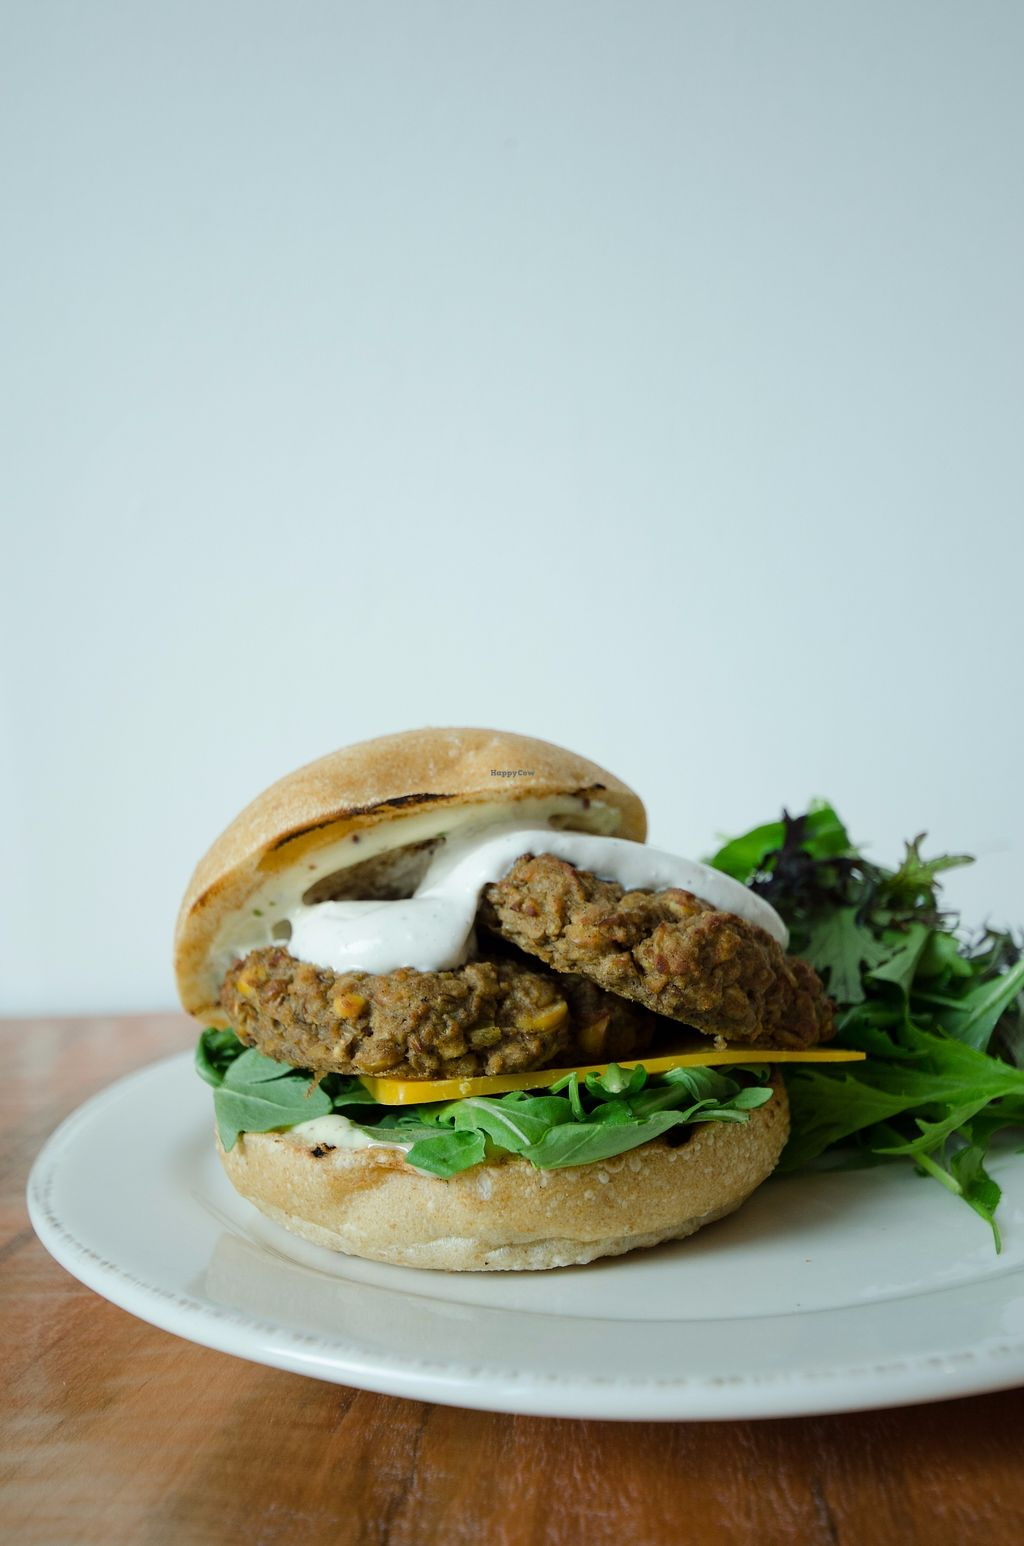 """Photo of FARMR  by <a href=""""/members/profile/FARMR"""">FARMR</a> <br/>Lentil & chickpea fritter sandwich, with garlic tahini dressing <br/> October 11, 2017  - <a href='/contact/abuse/image/102711/314136'>Report</a>"""